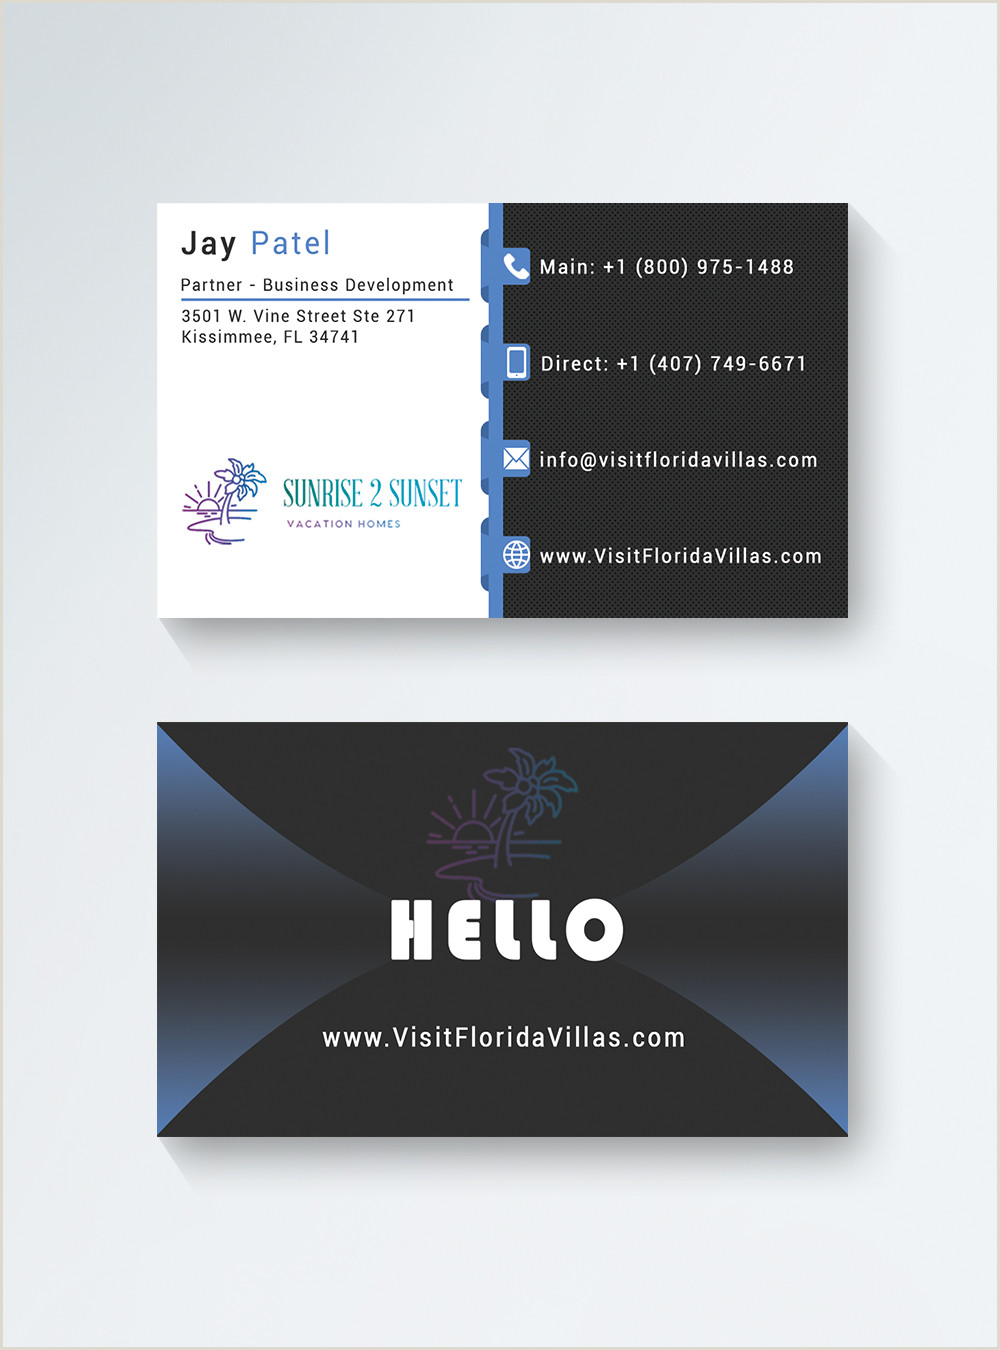 Black And White Business Card Template Black And White Modern Business Card Template Image Picture